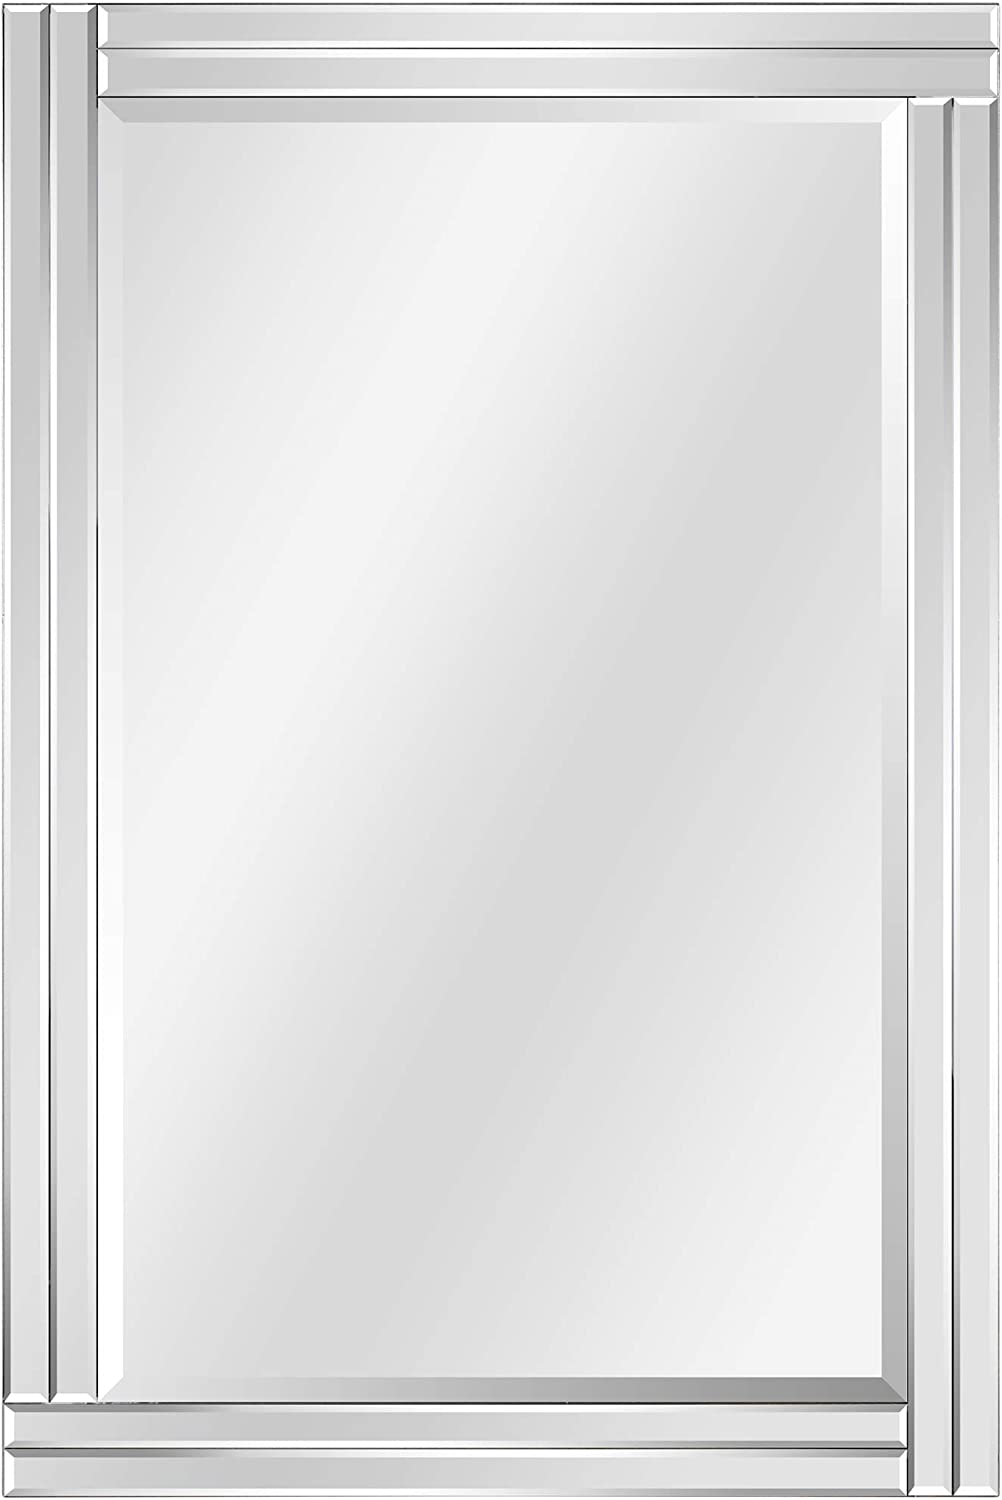 Washington Mall Empire Art Direct Modern Stepped Popular shop is the lowest price challenge Rectangle Vanit for Wall Mirror